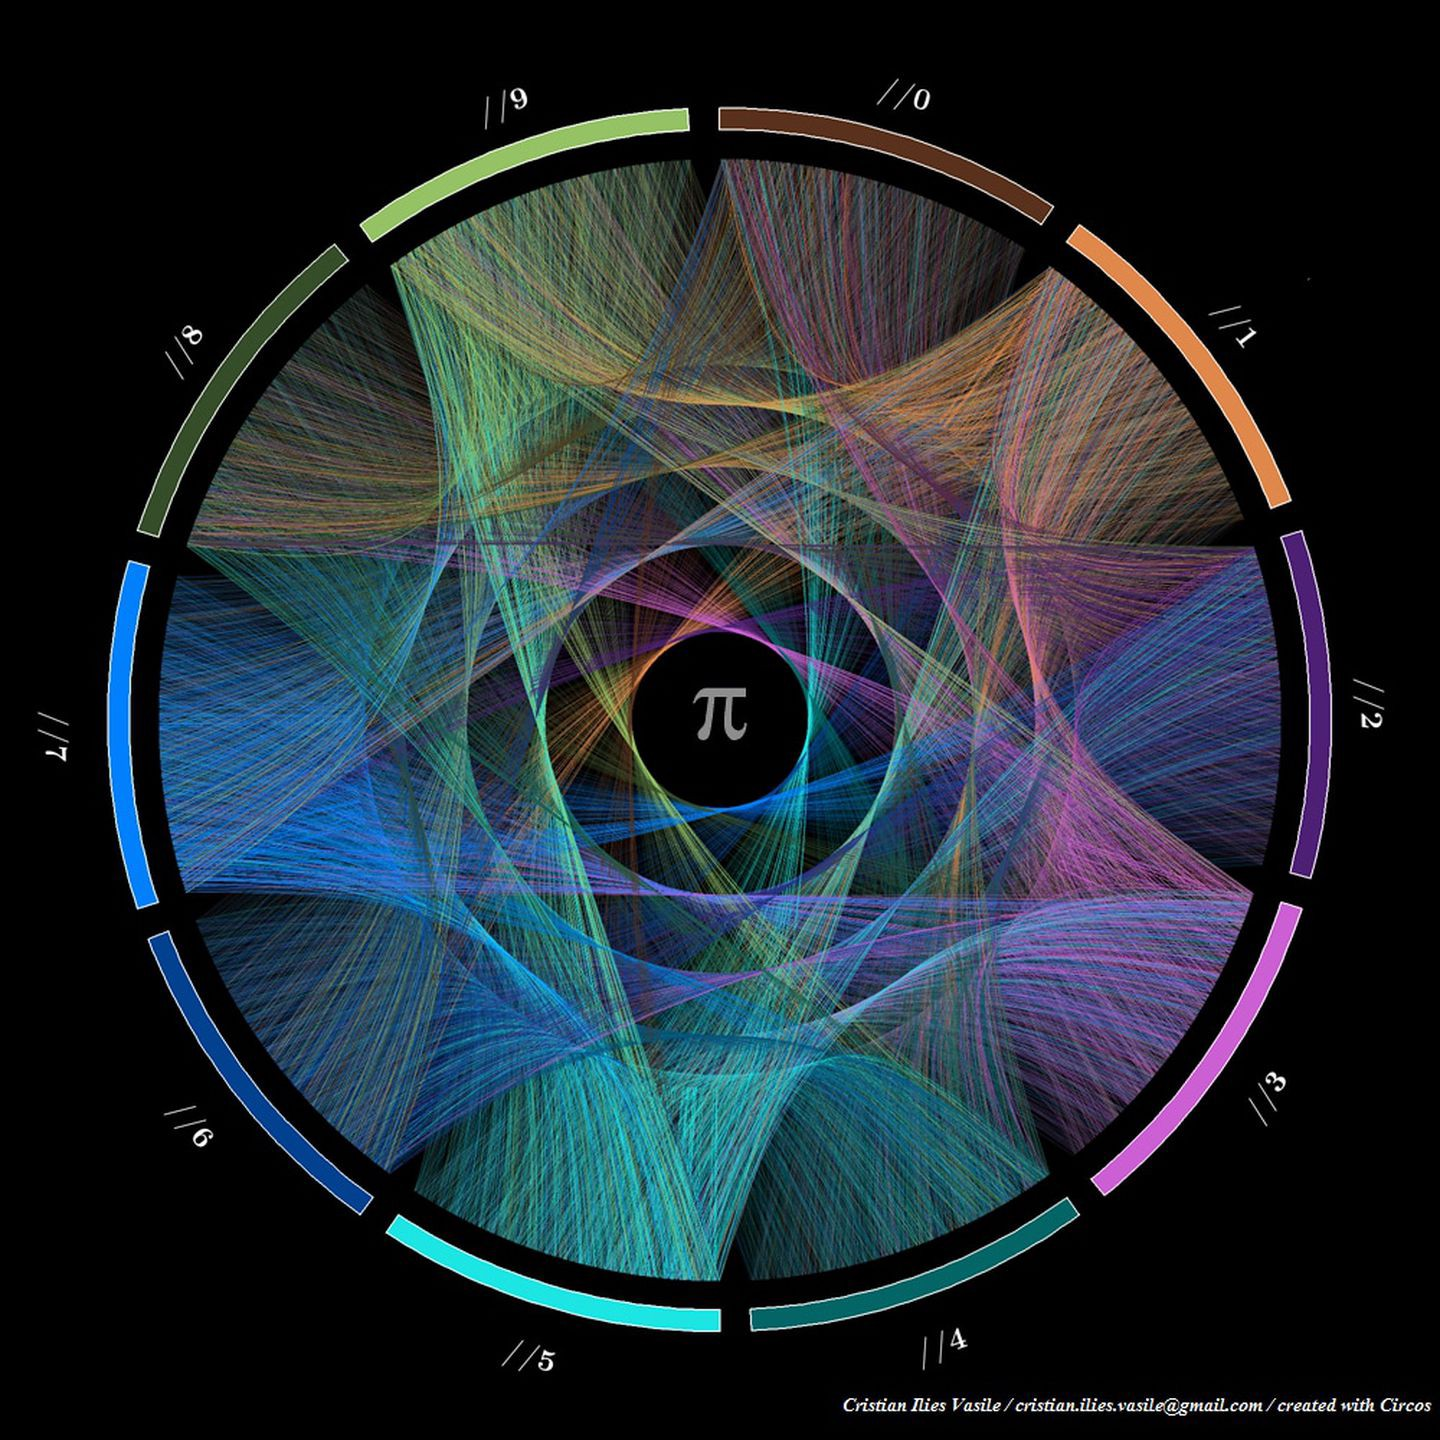 Visualisation of PI showing digit from 0 to 9